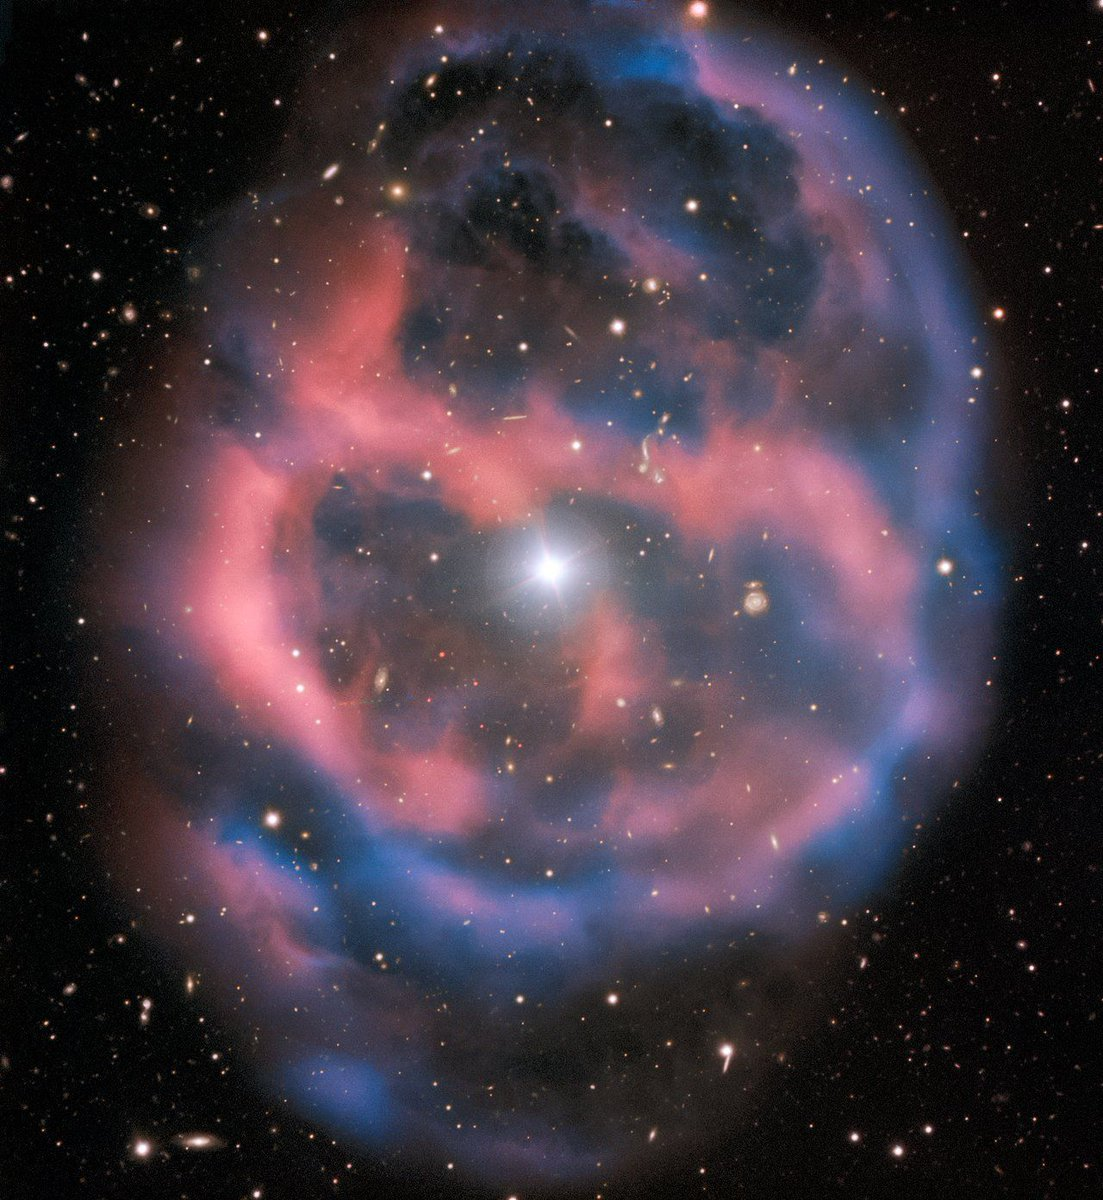 A Planetary Nebula Like This Will Only Be Visible For